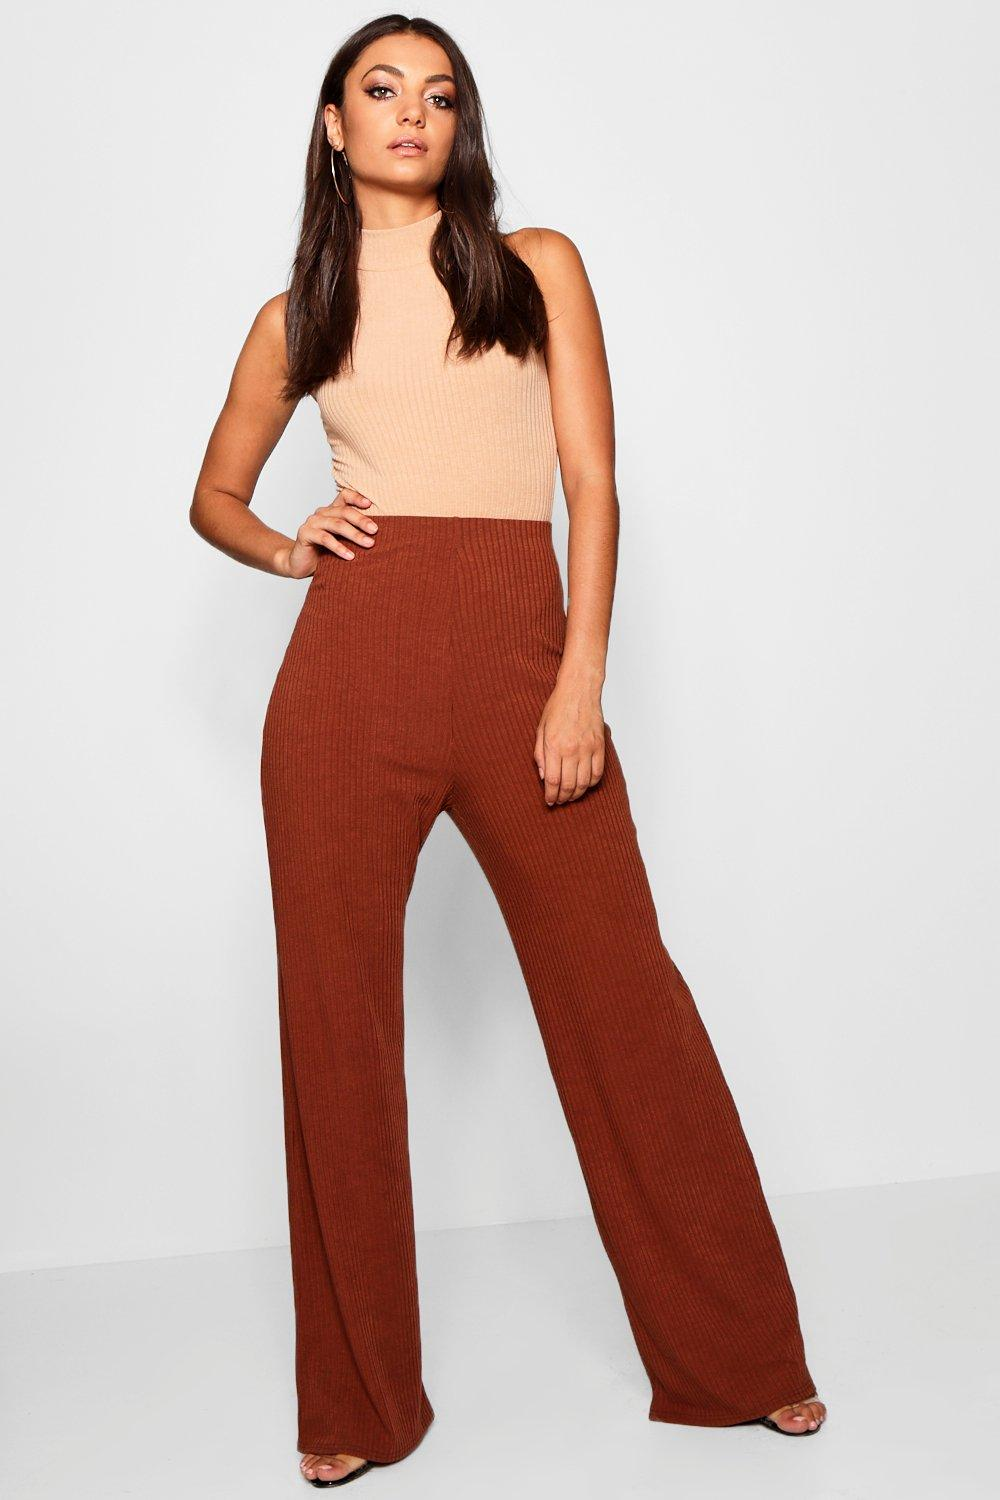 b7b3c3bbbeed7 Tall Rib Knit Wide Leg Pants. Hover to zoom